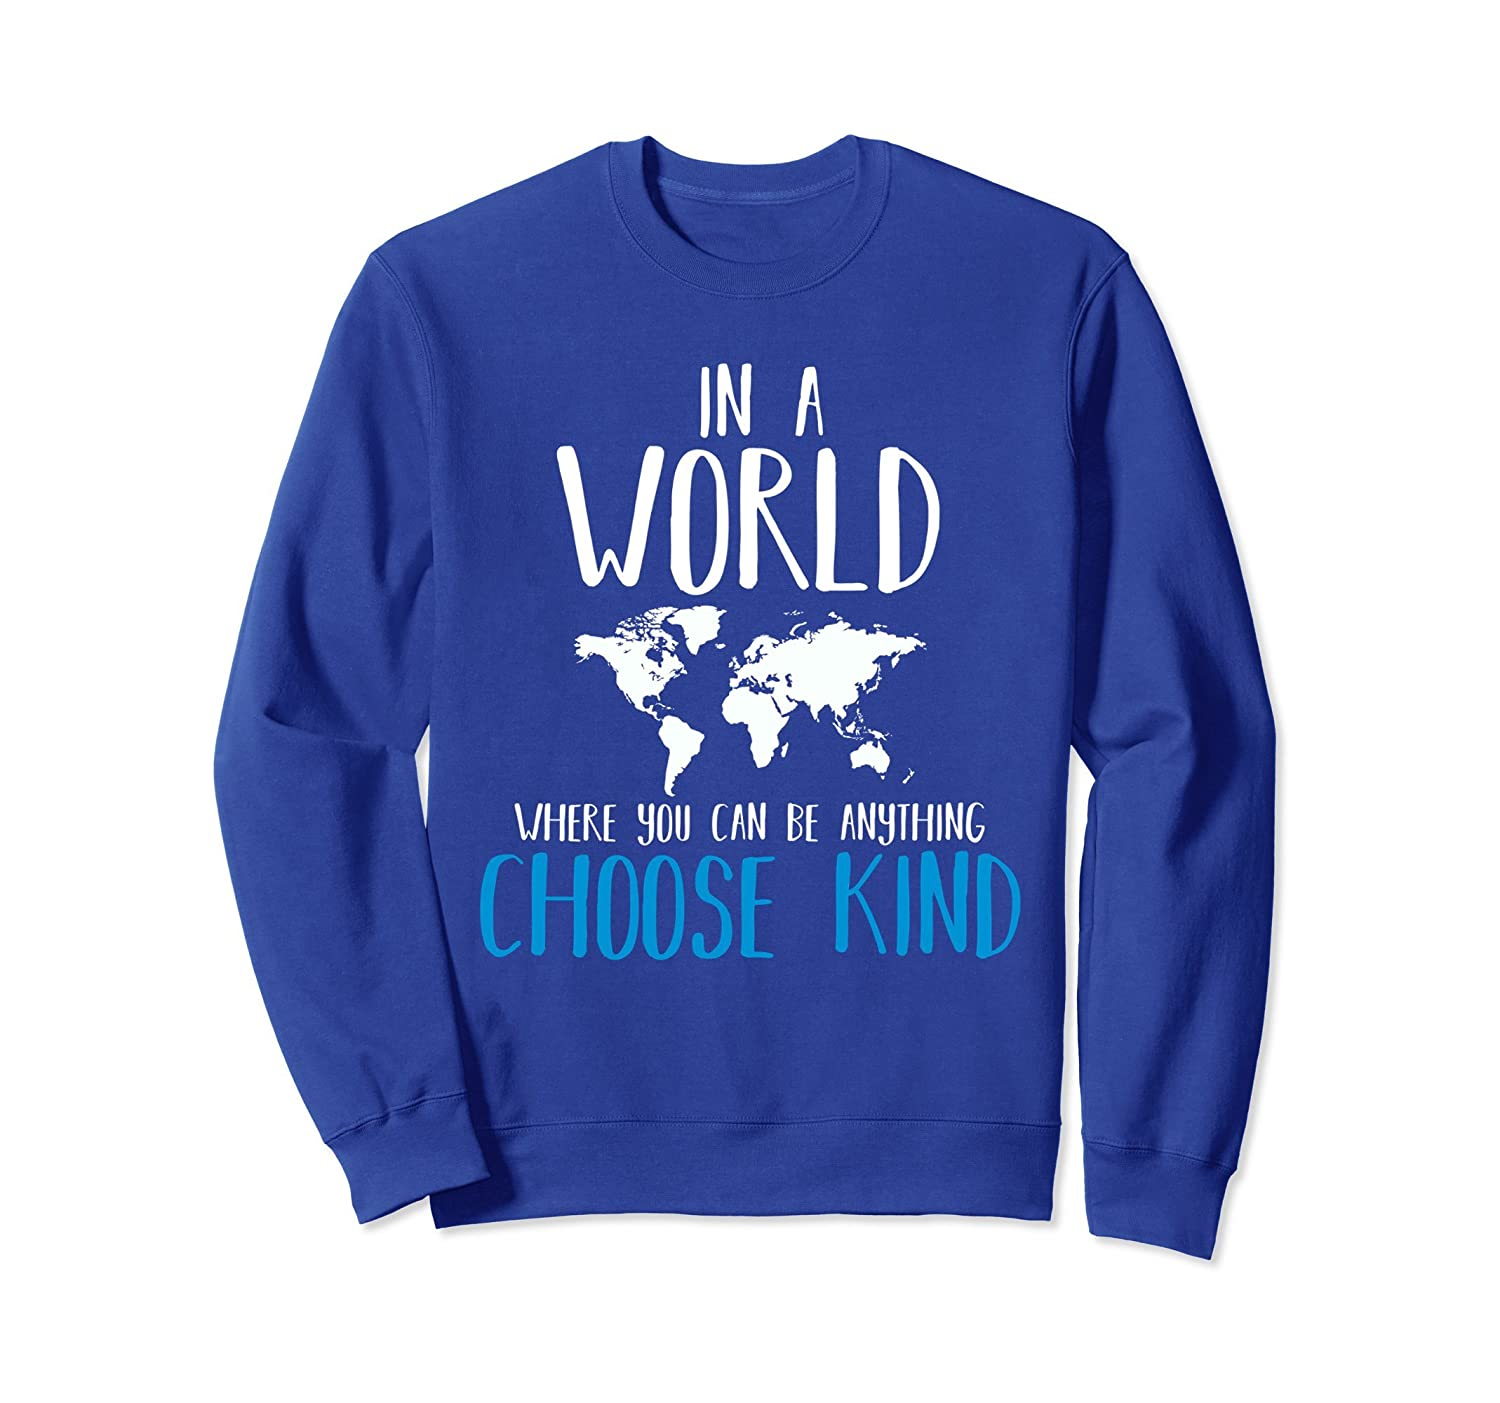 In A World You Can Be Anything Choose Kind Sweatshirt Tee-ah my shirt one gift